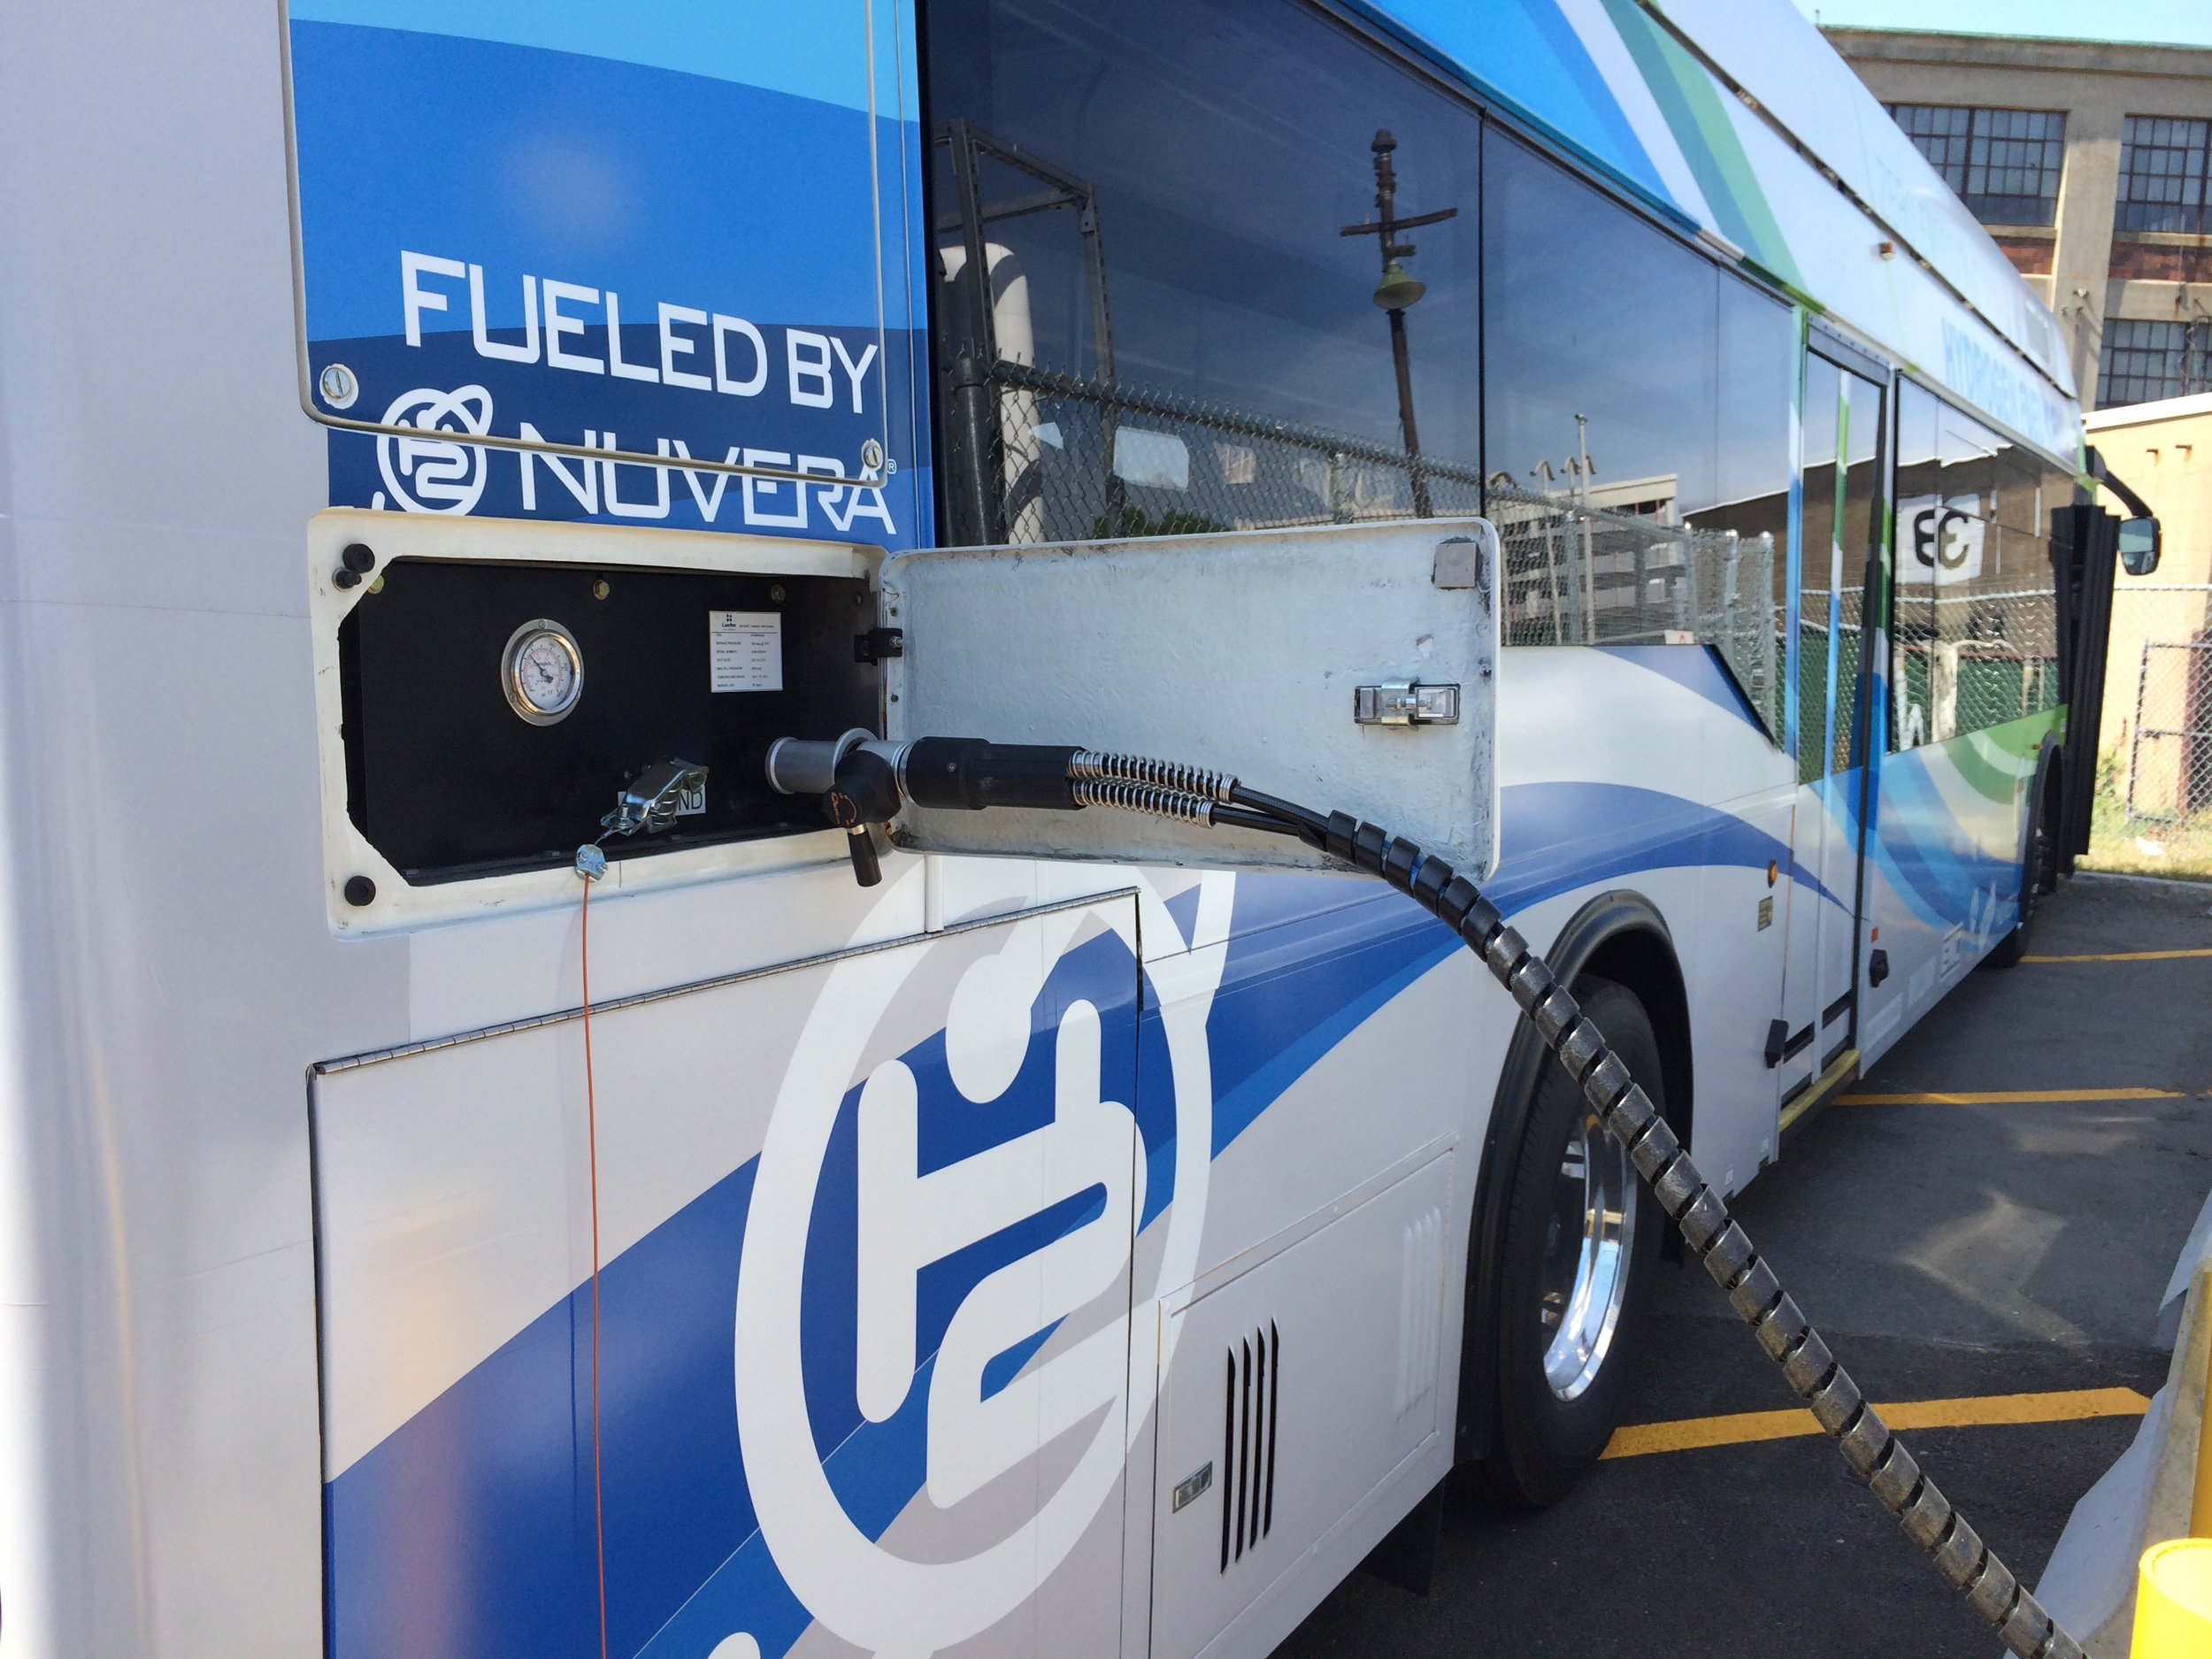 Zero-emissions electric bus being fueled (e.g. repowered) at a station that provides efficient, on-site production of the clean energy carrier, hydrogen.